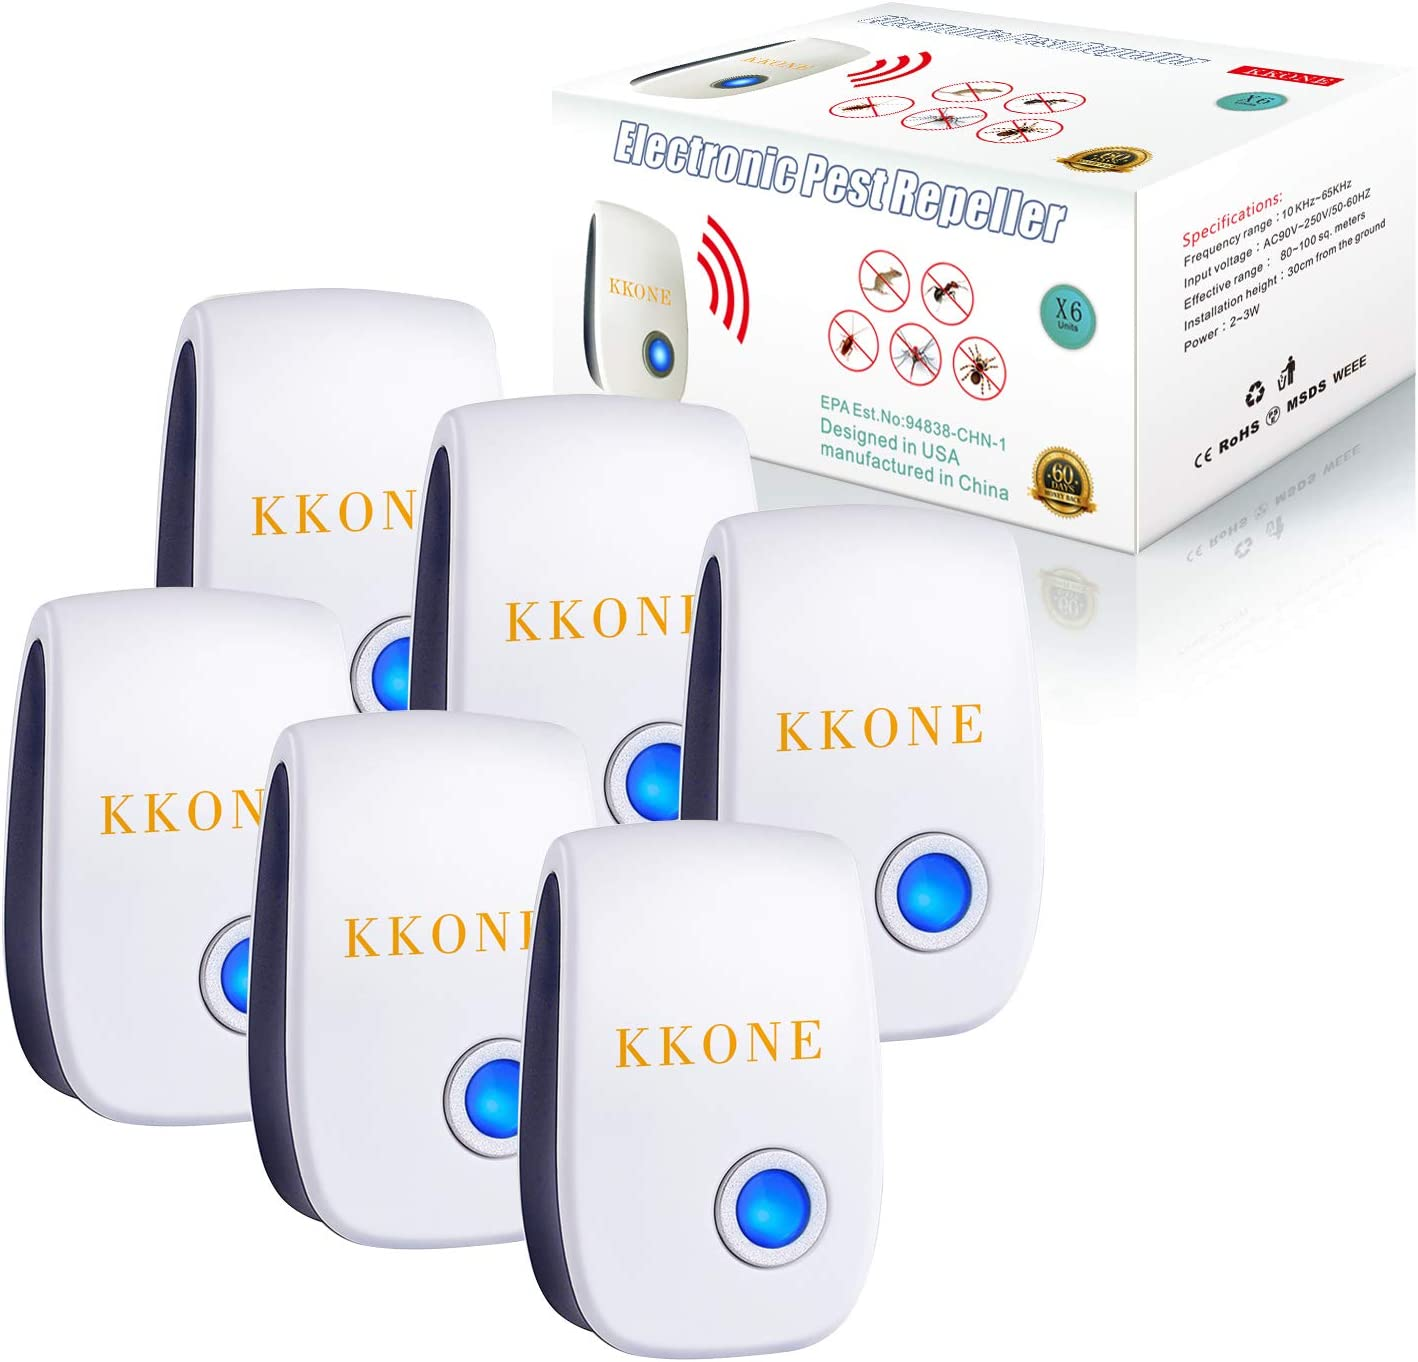 KKONE Ultrasonic Pest Repeller 6 Packs, 2020 Upgraded Pest Control Reject Devices Electronic Plug in Repellent Defender Home Indoor for Rat Mosquito Mice Spider Ant Roaches Bugs Flea Insect